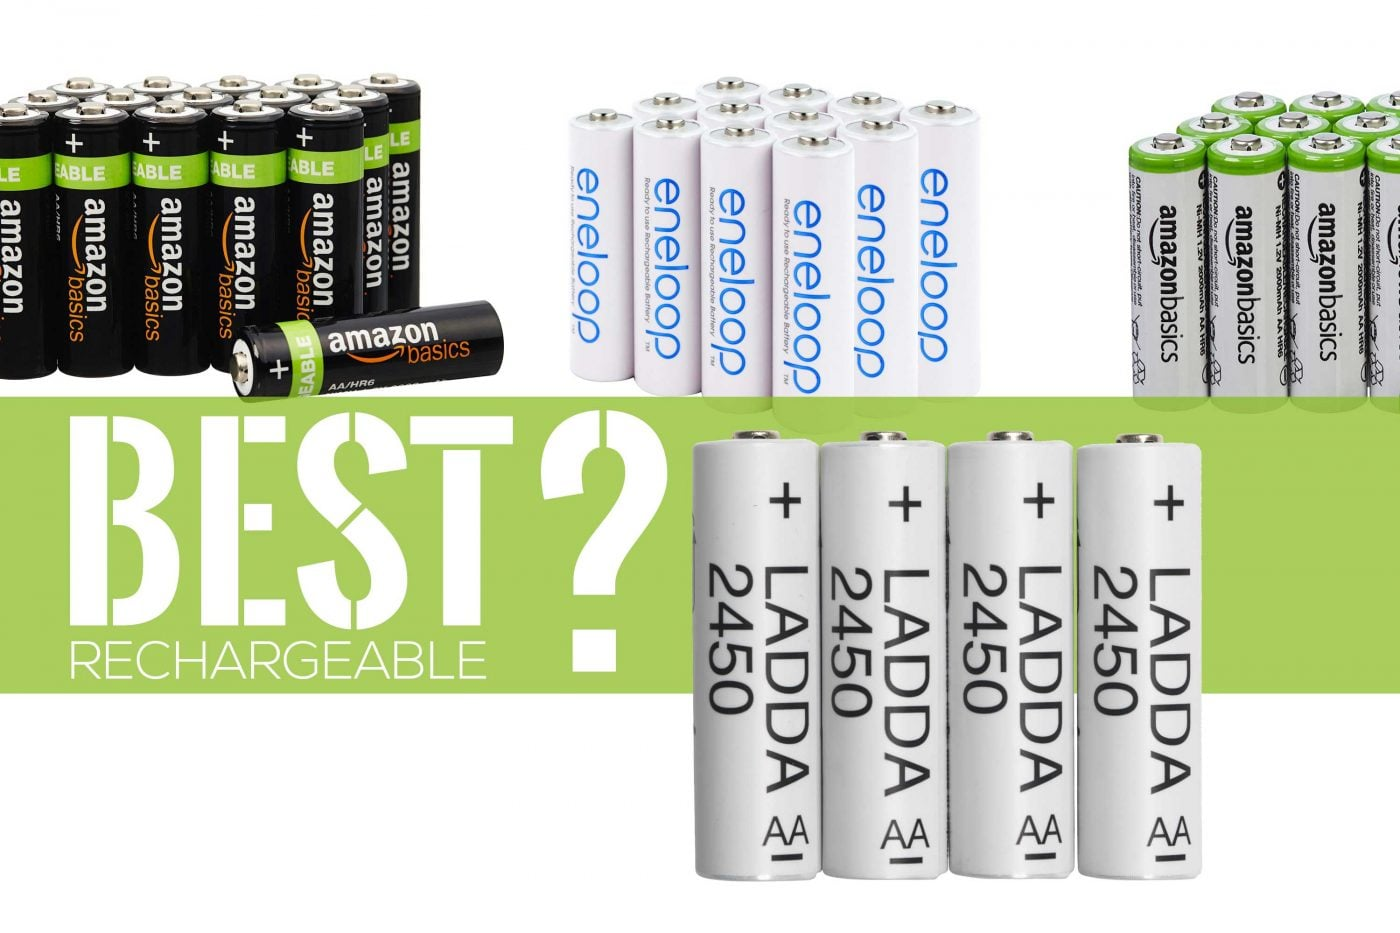 Best Rechargeable Aa Nimh Batteries For Your Flash Don T Buy Eneloops Light And Matter